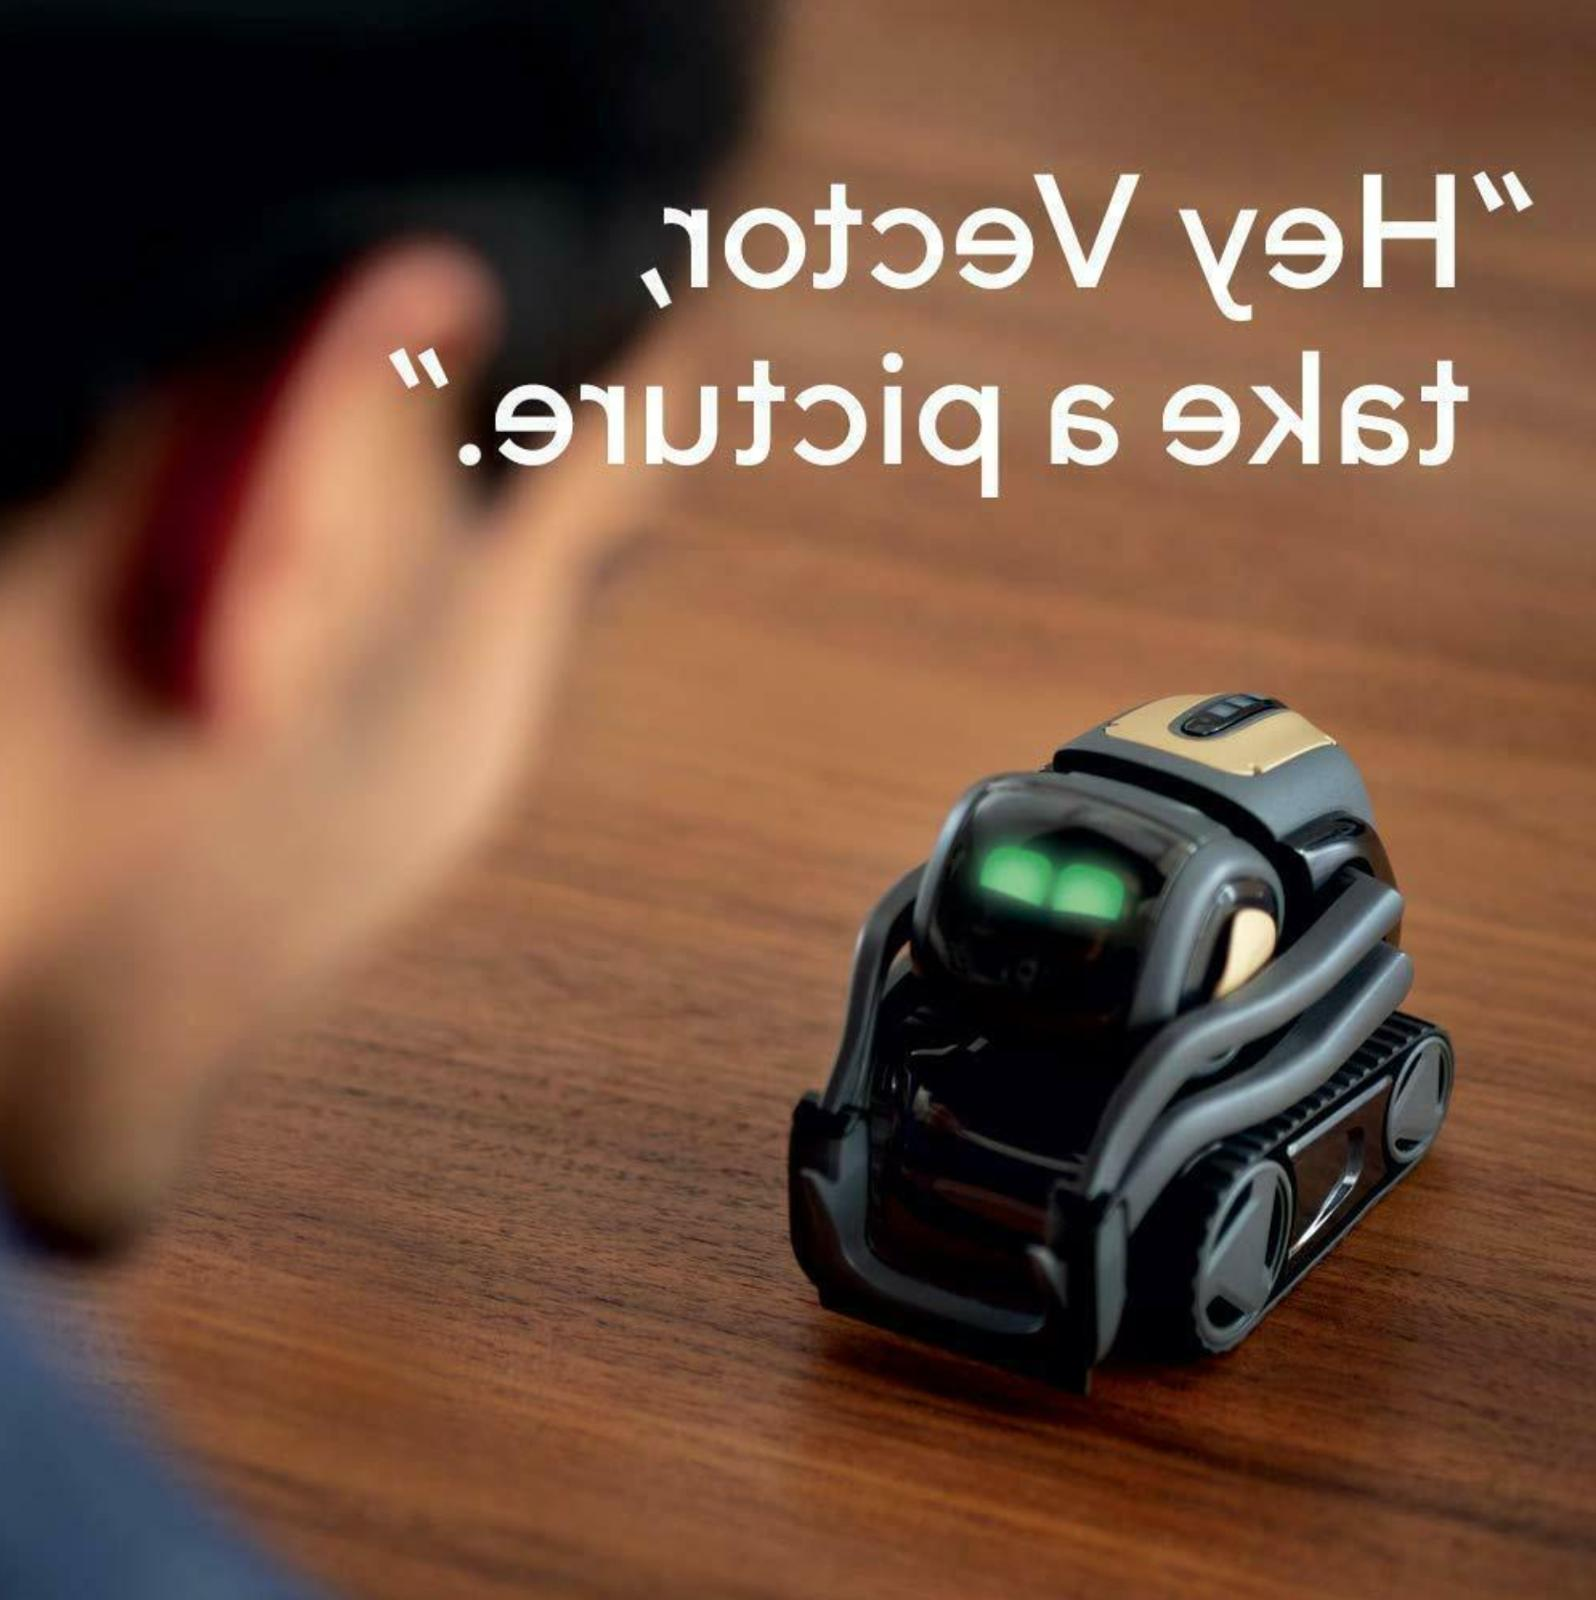 Anki Robot Interactive Toy Companion Robot With Built